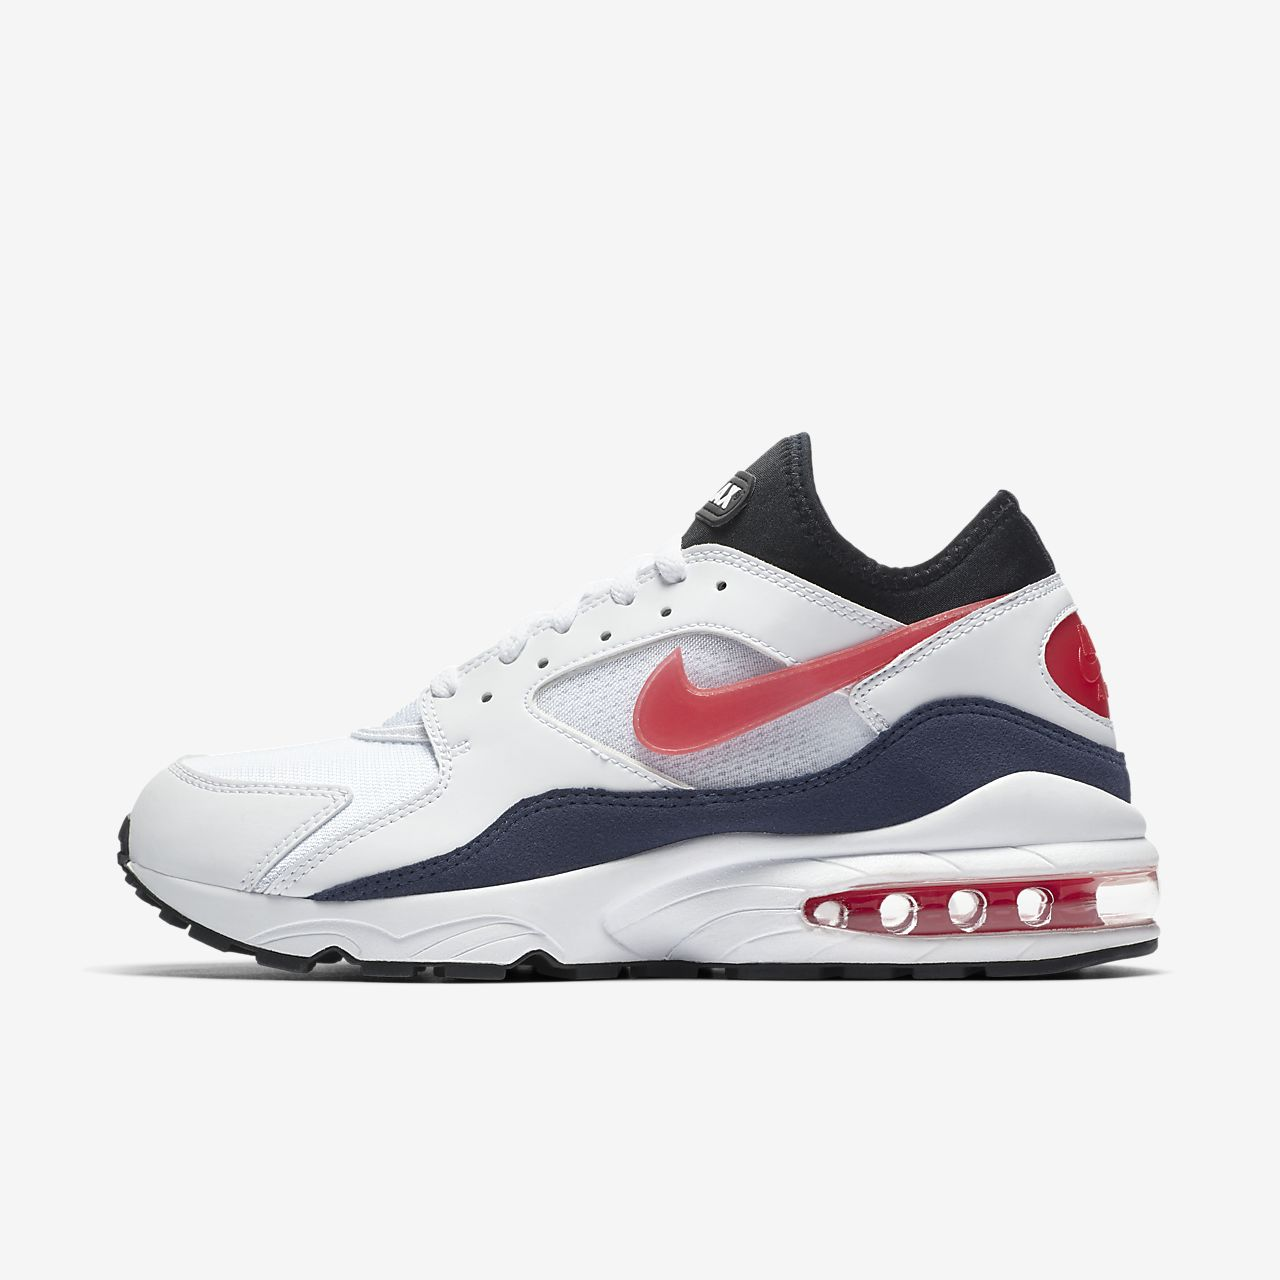 Men's Nike Air Max 93 Running Shoes White/Habanero Red/Neutral Indigo 306551 102